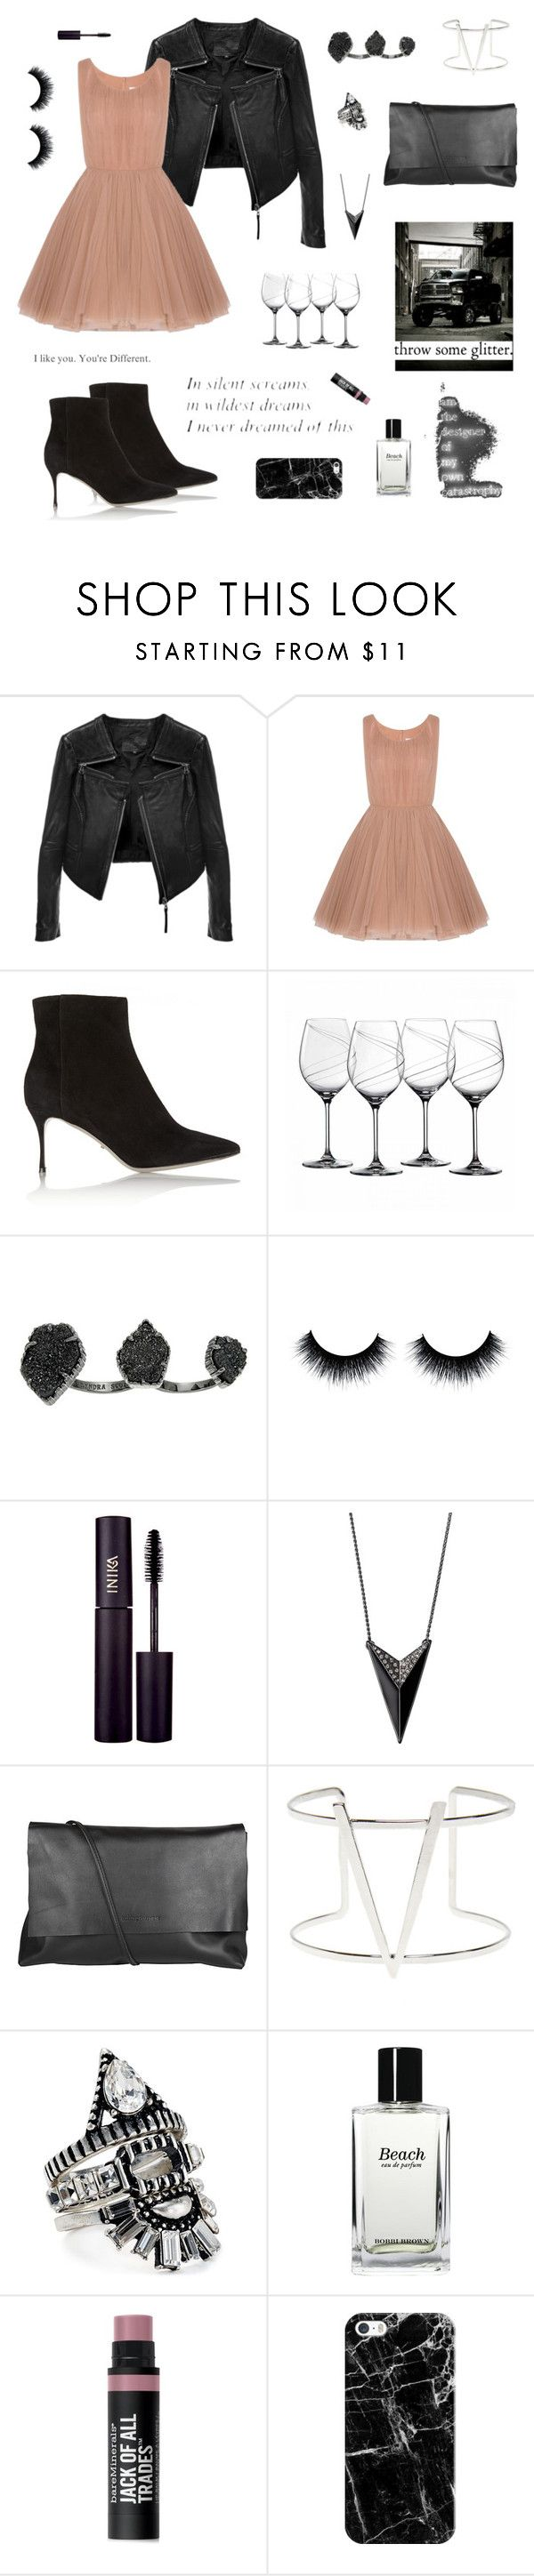 """You Make Broken Beautiful"" by jax2207 ❤ liked on Polyvore featuring Linea Pelle, Lara Khoury, Sergio Rossi, Royal Doulton, Kendra Scott, INIKA, Arlington Milne, Wet Seal, BaubleBar and Bobbi Brown Cosmetics"